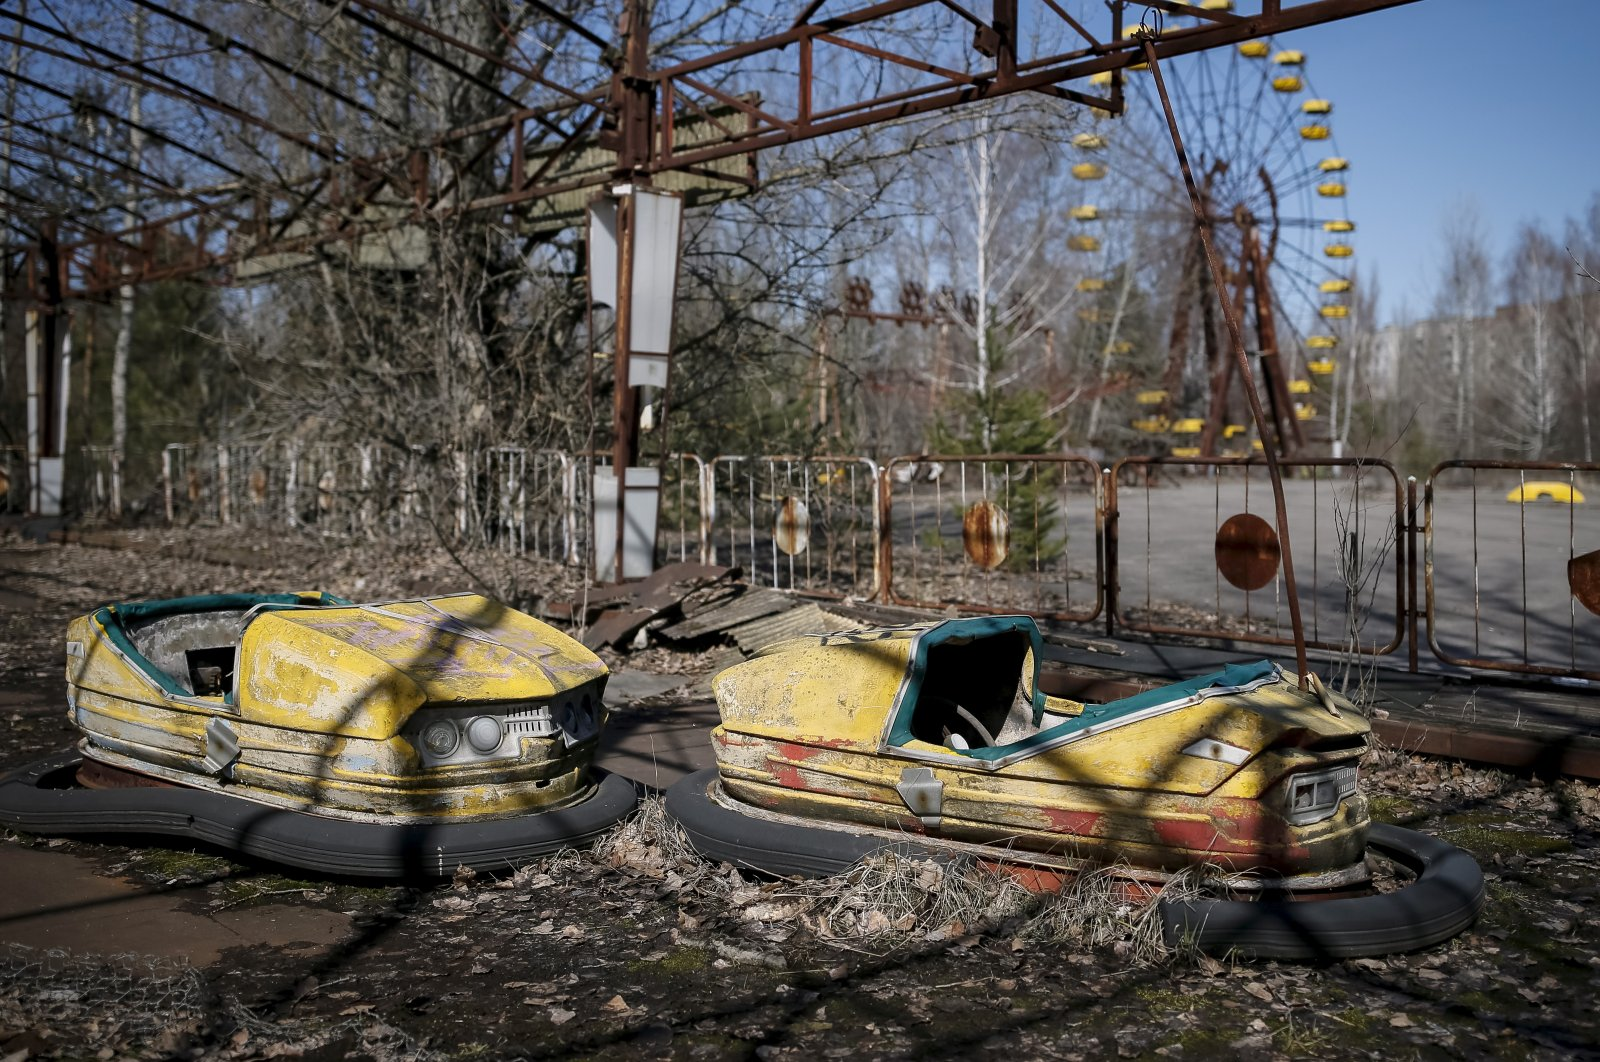 A view of an amusement park in the center of the abandoned town of Pripyat near the Chernobyl Nuclear Power Plant, Ukraine, March 28, 2016. (Reuters Photo)